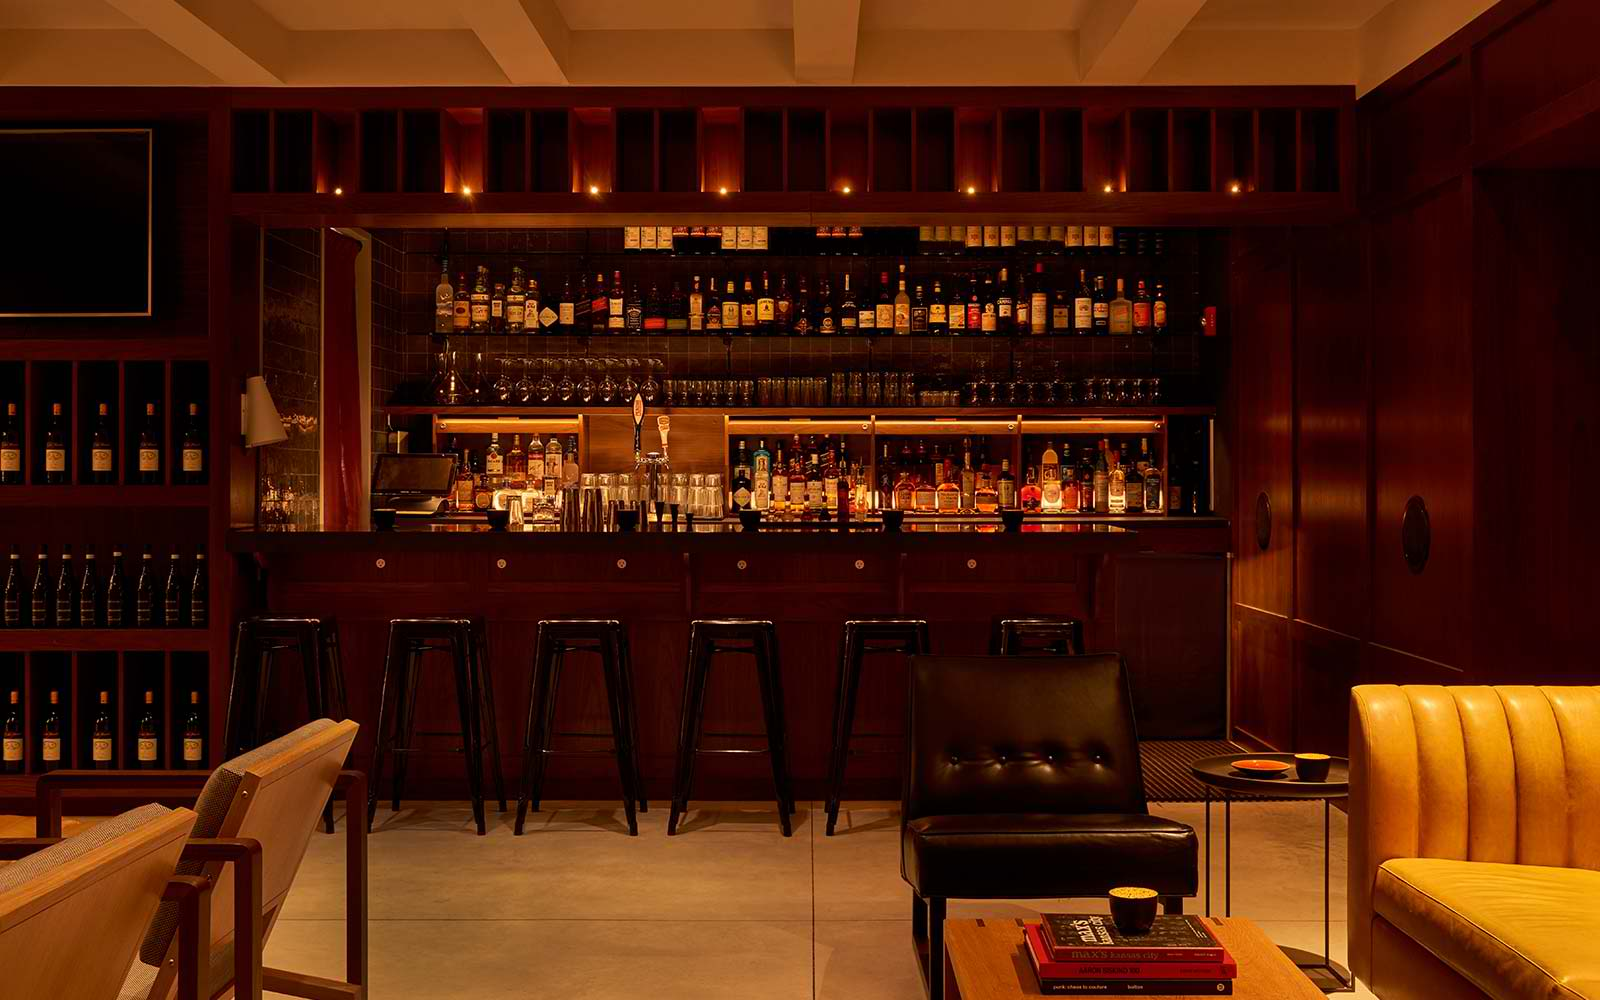 NoMad BARlo with full bar and seating area